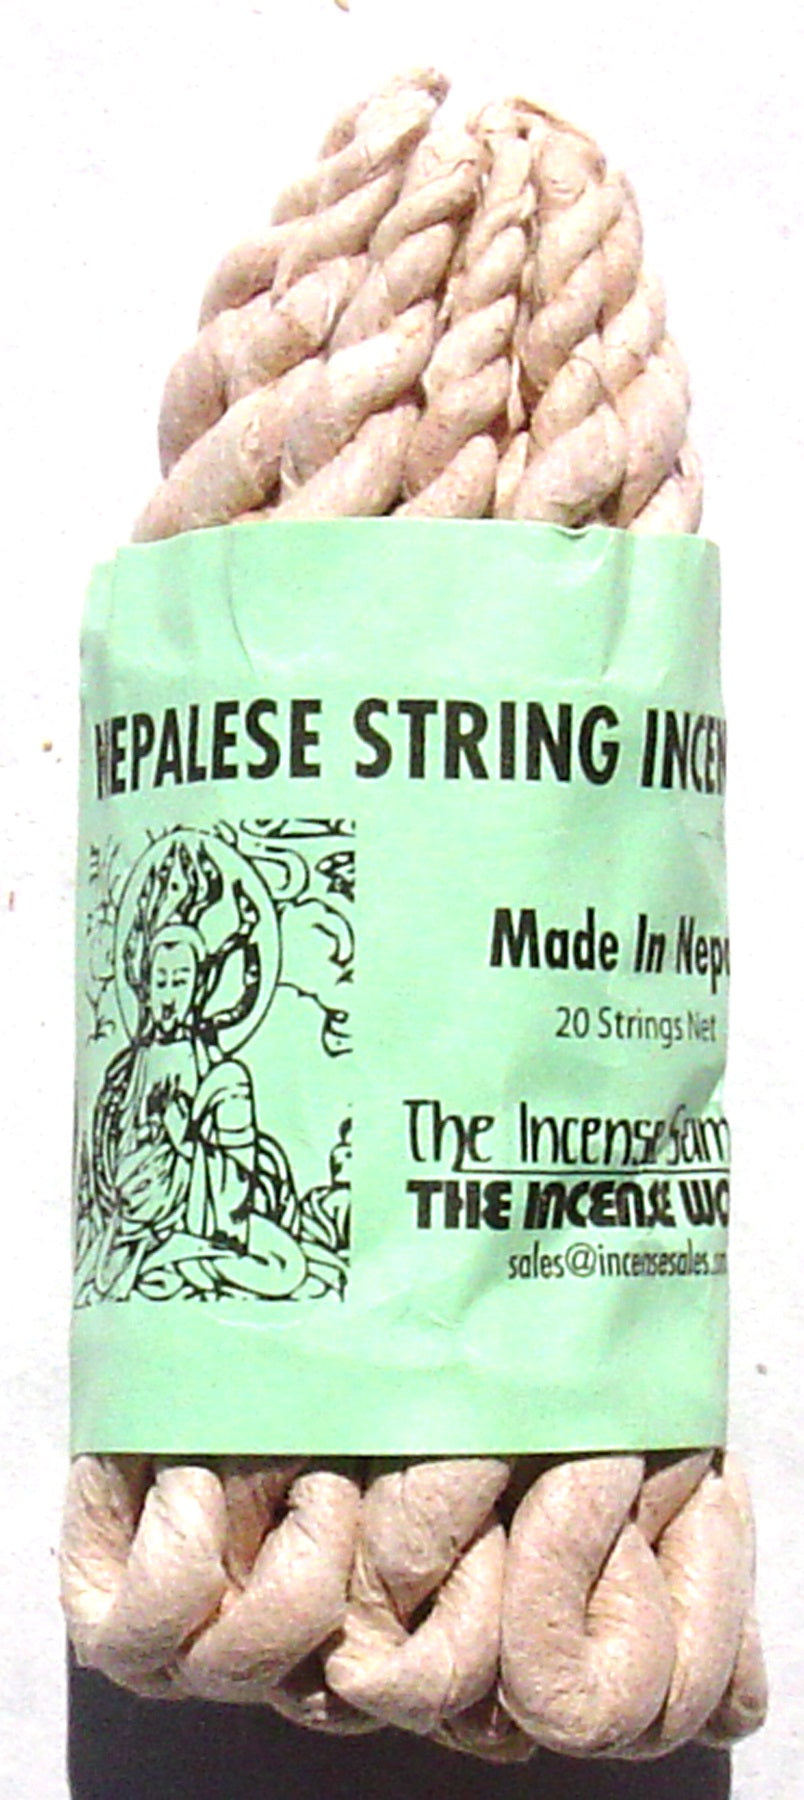 Nepalese String Incense